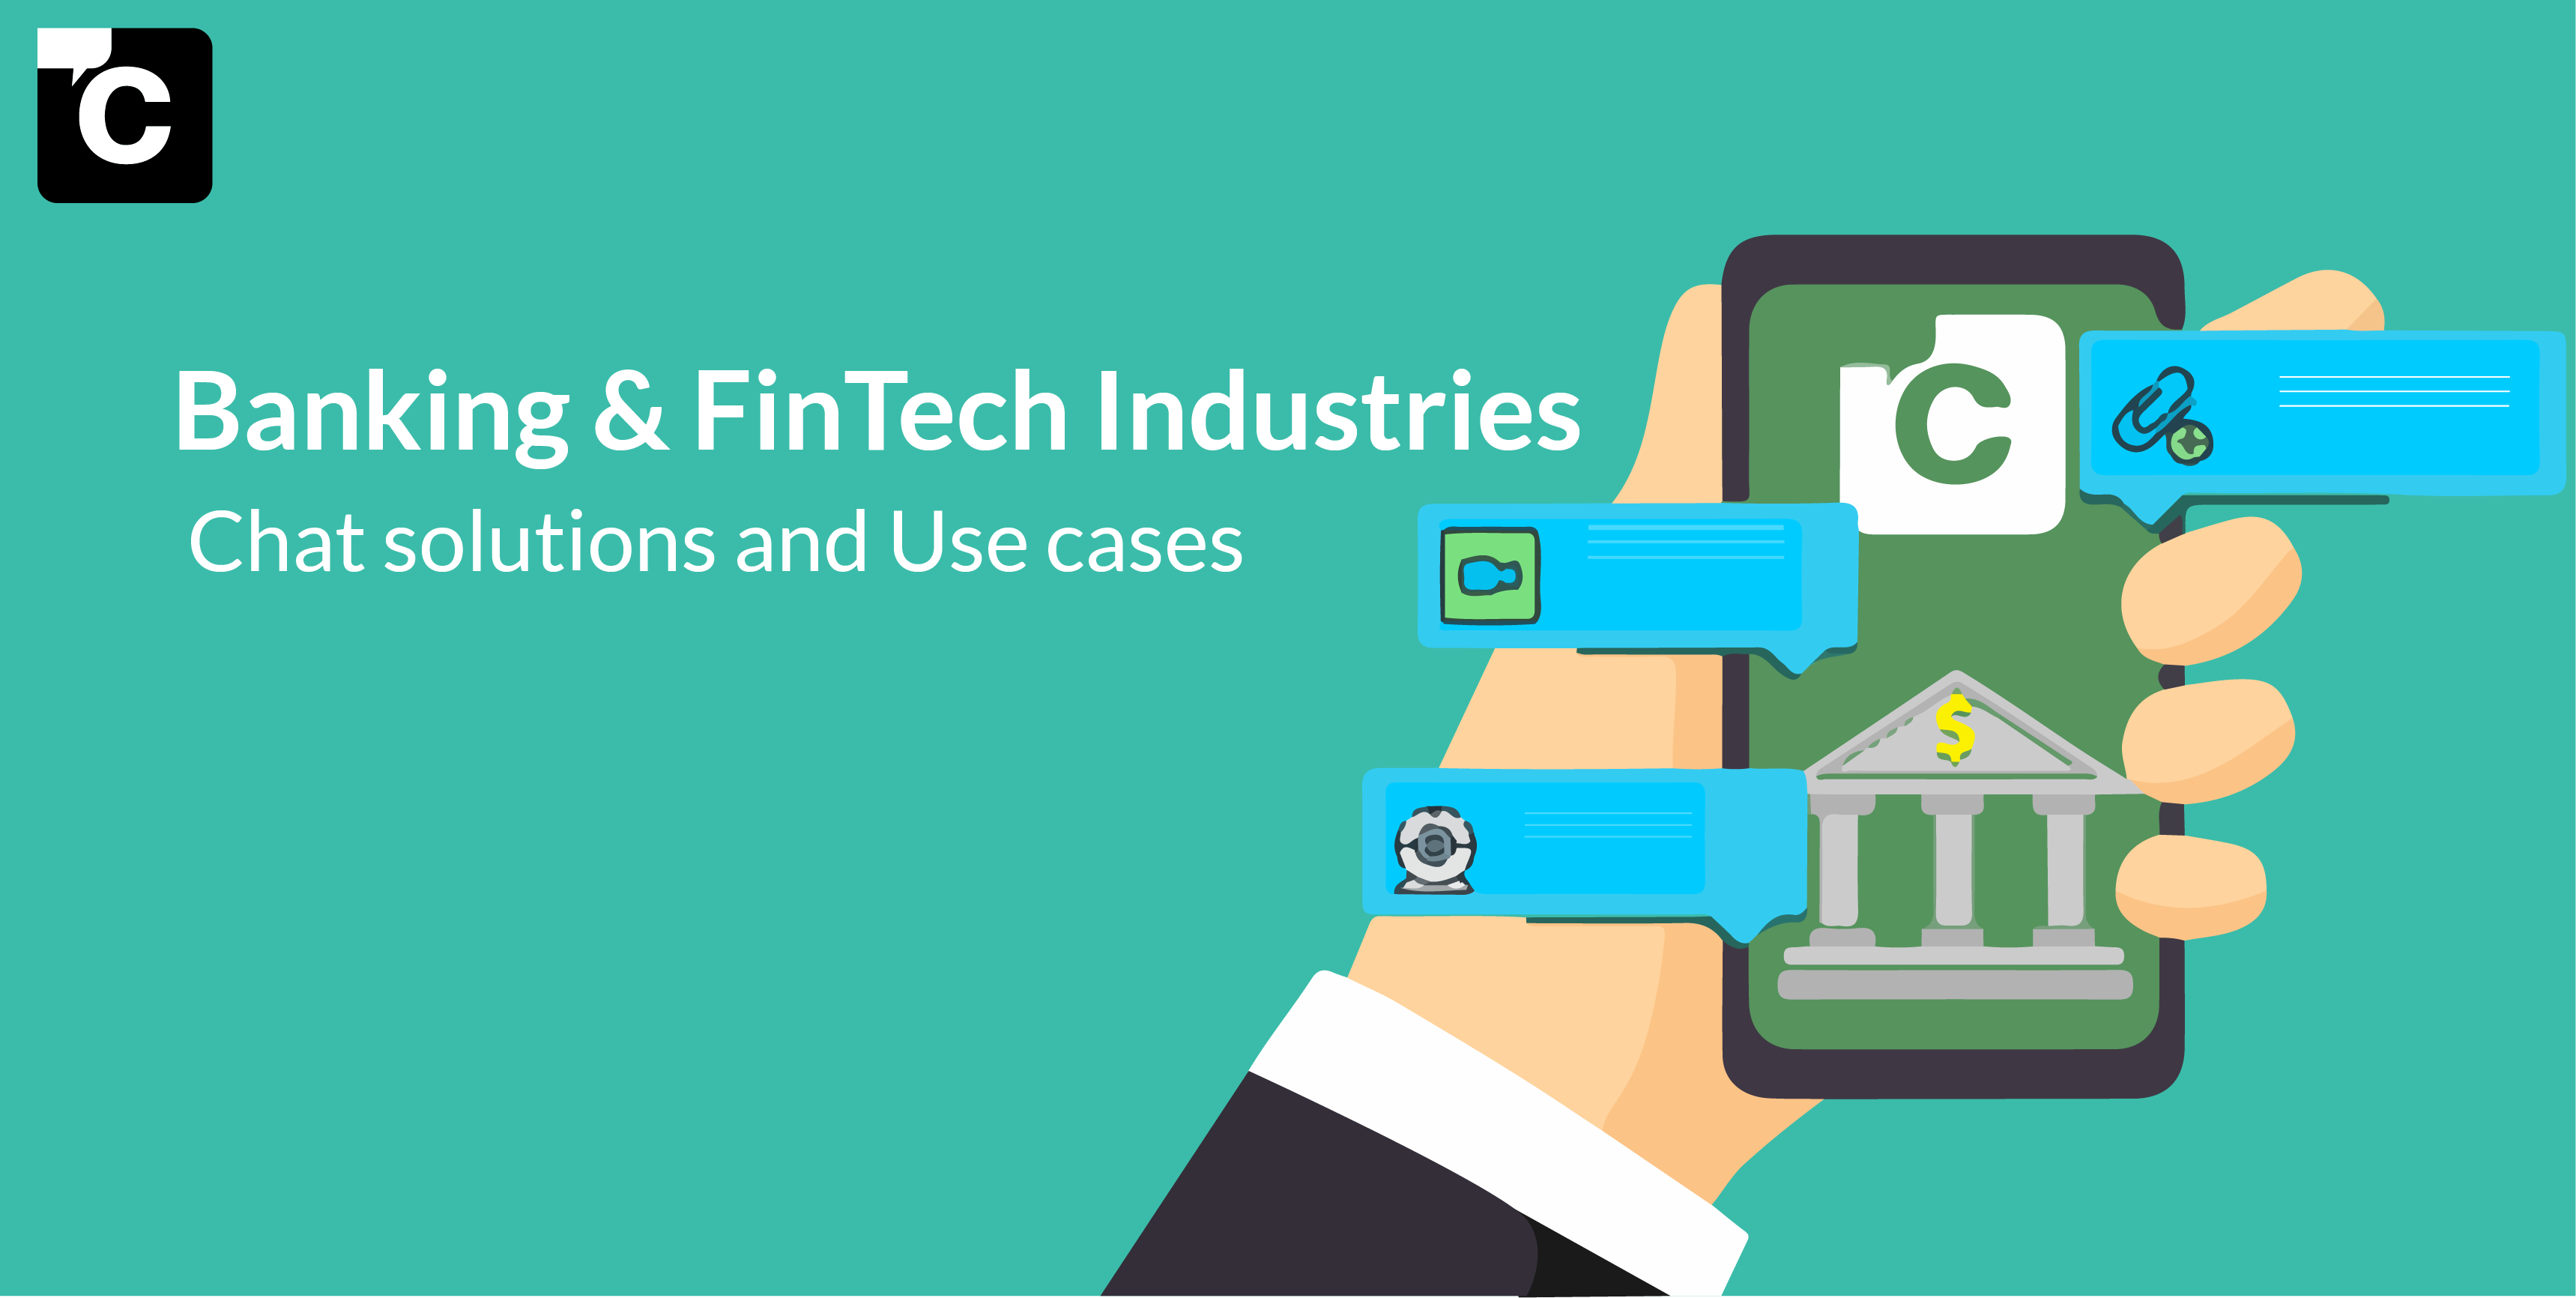 Banking & FinTech Industries: Chat solution and Use cases